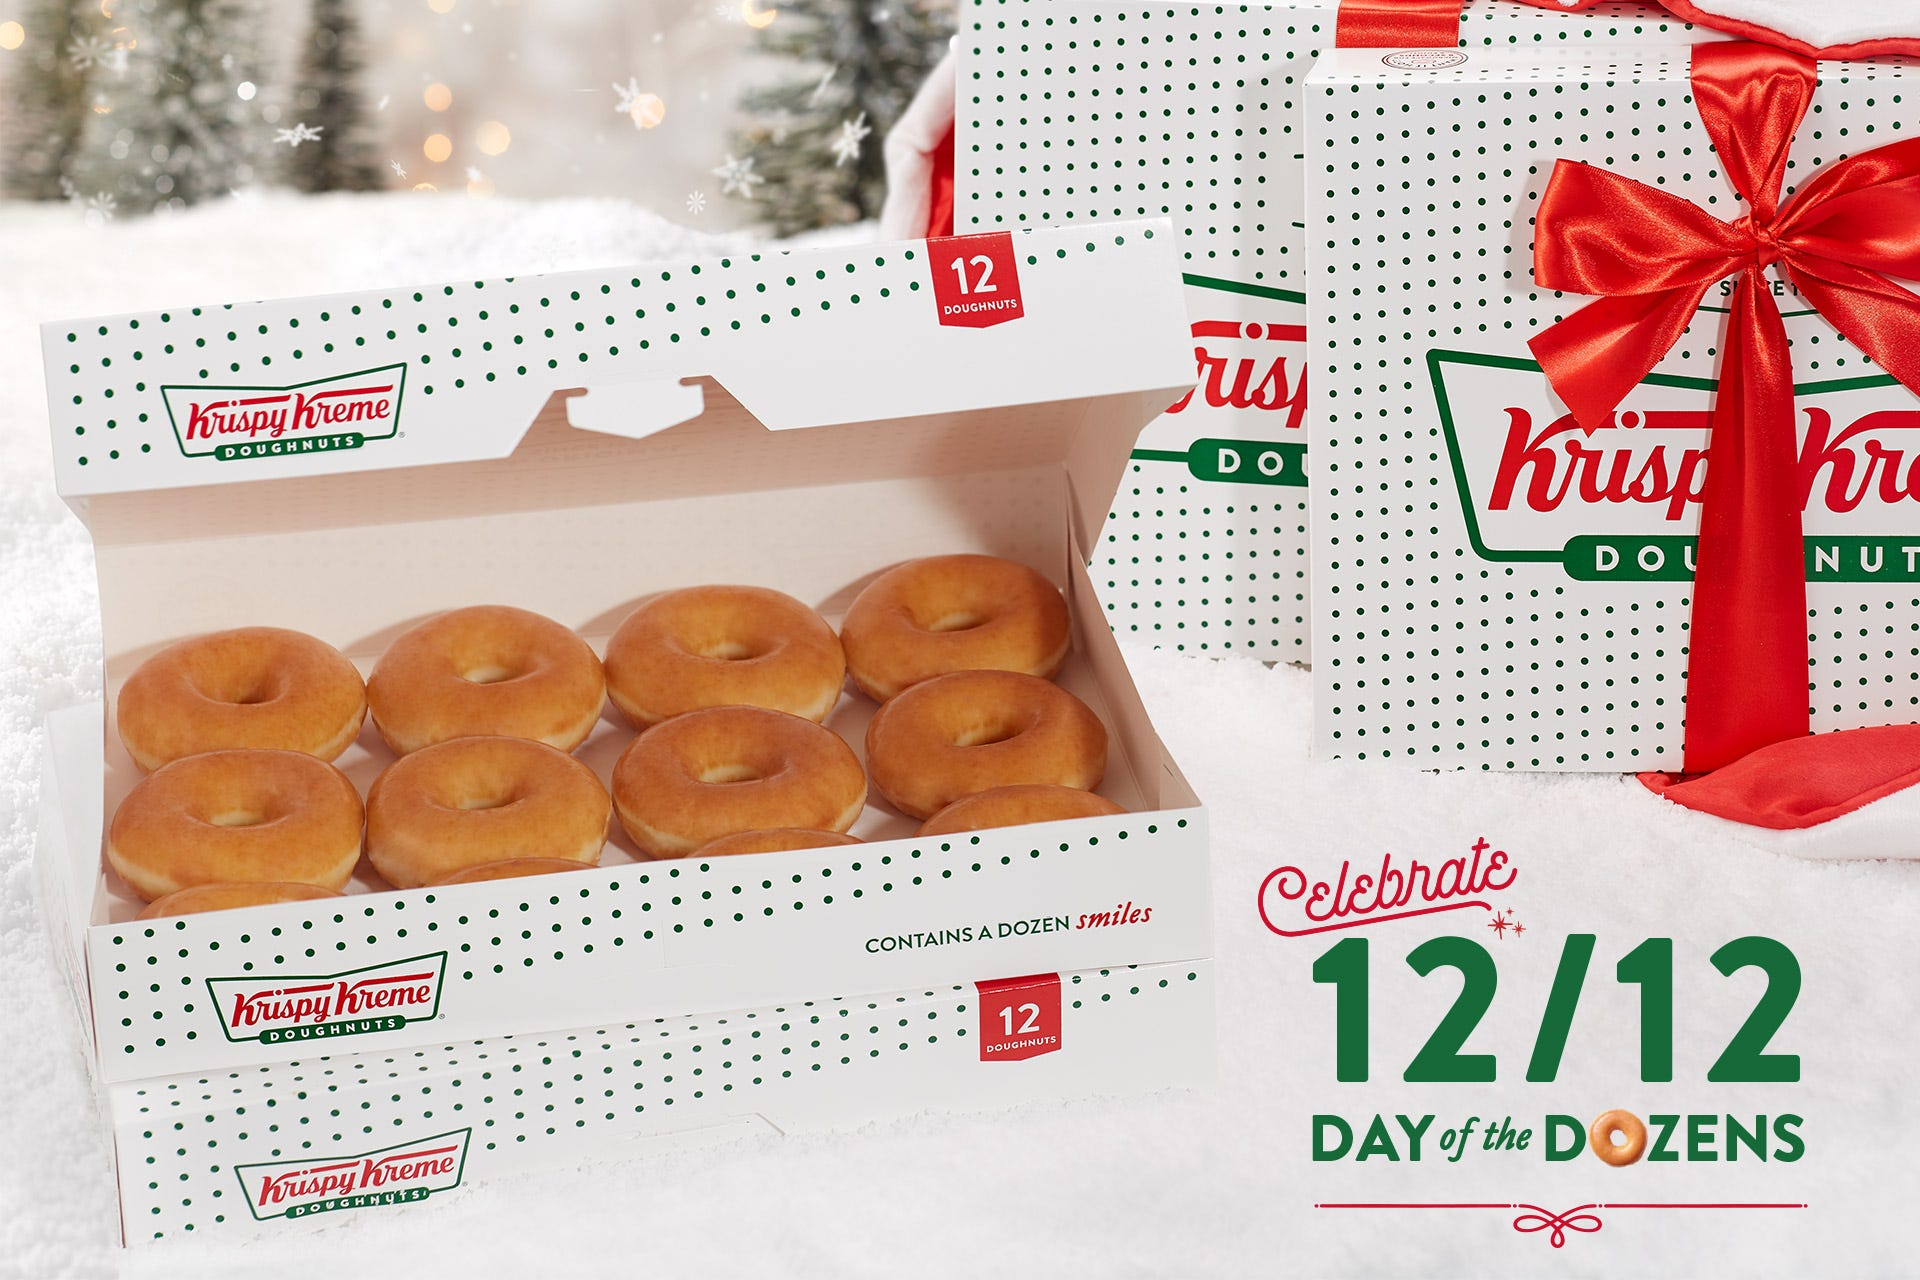 Krispy Kreme doughnuts deal extended: How rewards members can get a dozen for a $1 Sunday